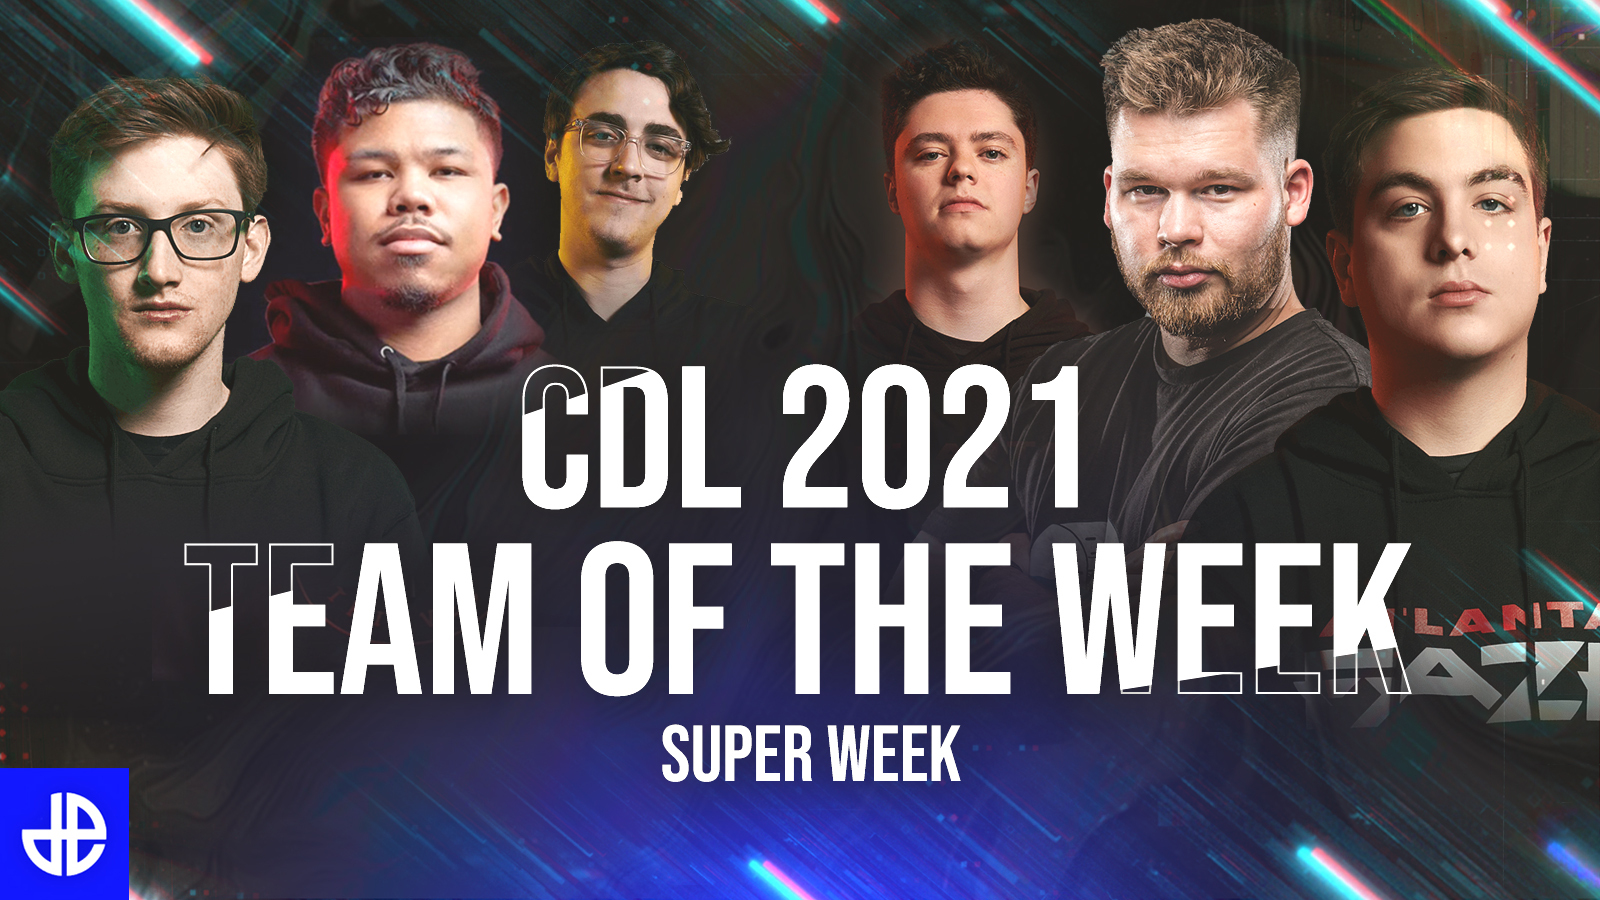 CDL Team of the Week after Stage 1 Super Week